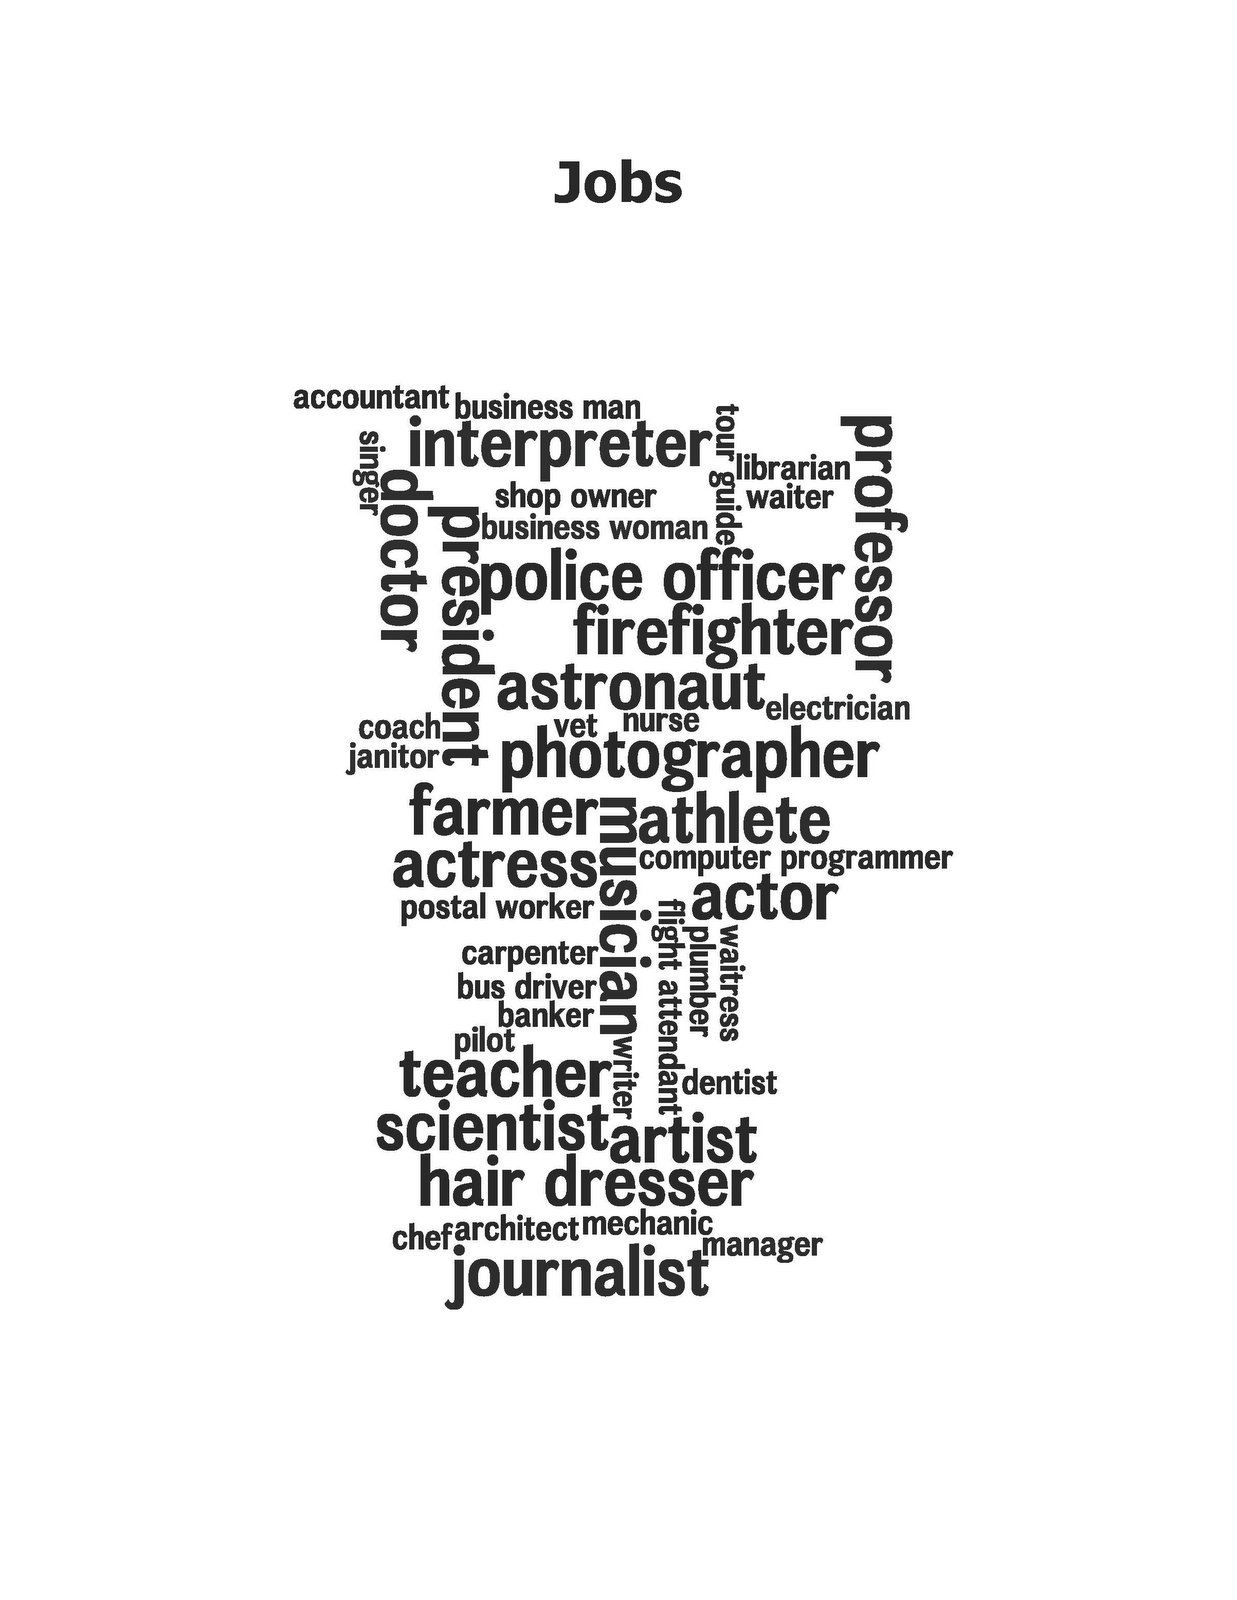 content based instruction vocational and life choices listening jobs wordle activity ideas